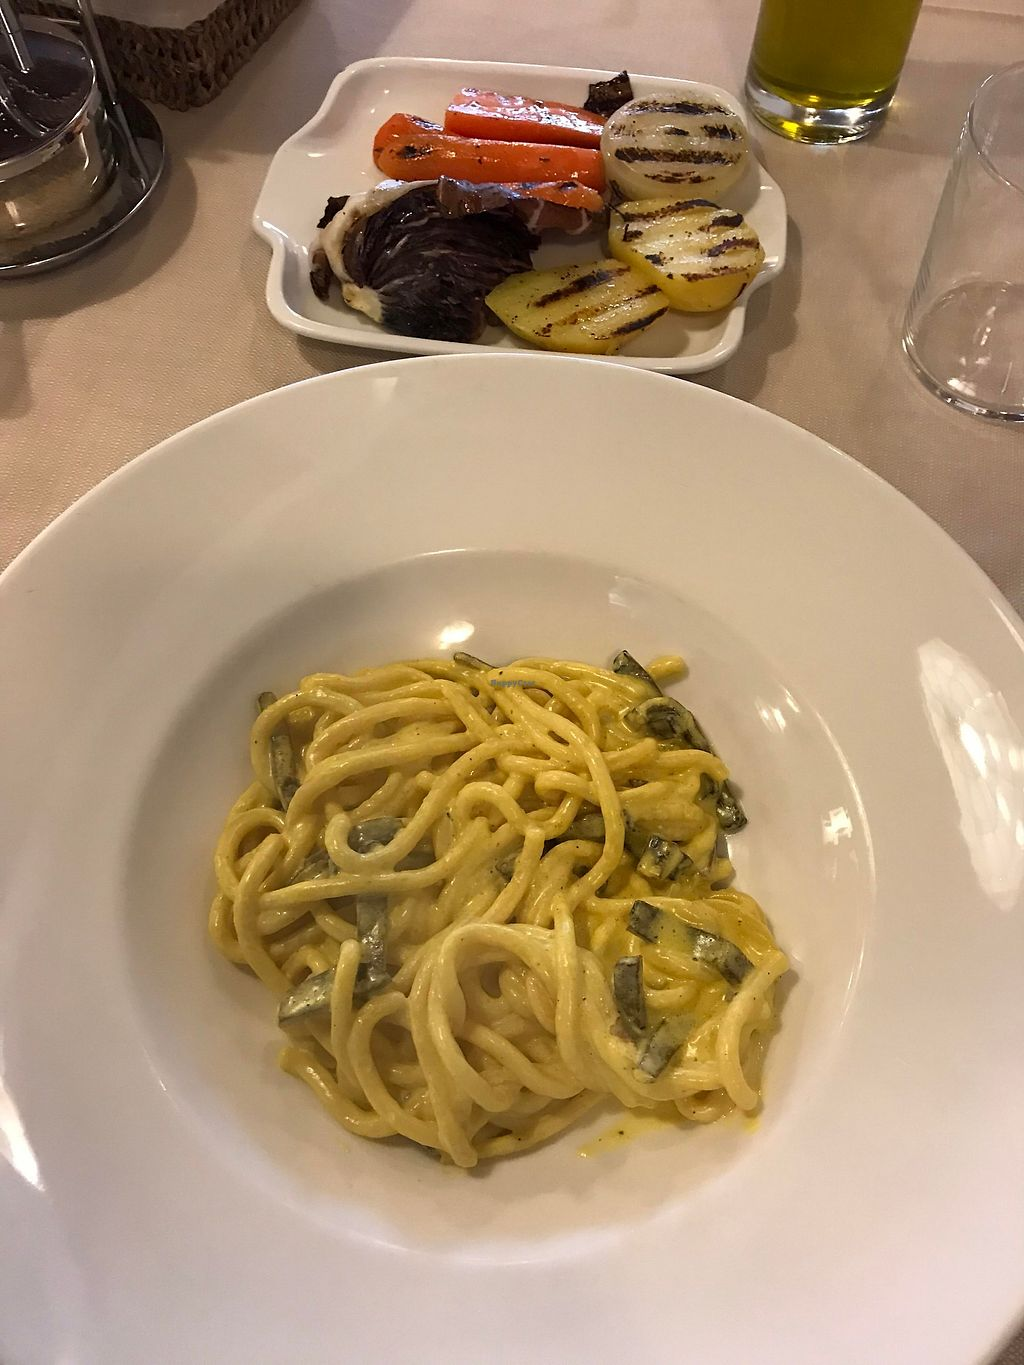 "Photo of La Lanterna  by <a href=""/members/profile/KorneliaSochanova"">KorneliaSochanova</a> <br/>spaghetti and grilled veggies <br/> February 11, 2018  - <a href='/contact/abuse/image/43047/357799'>Report</a>"